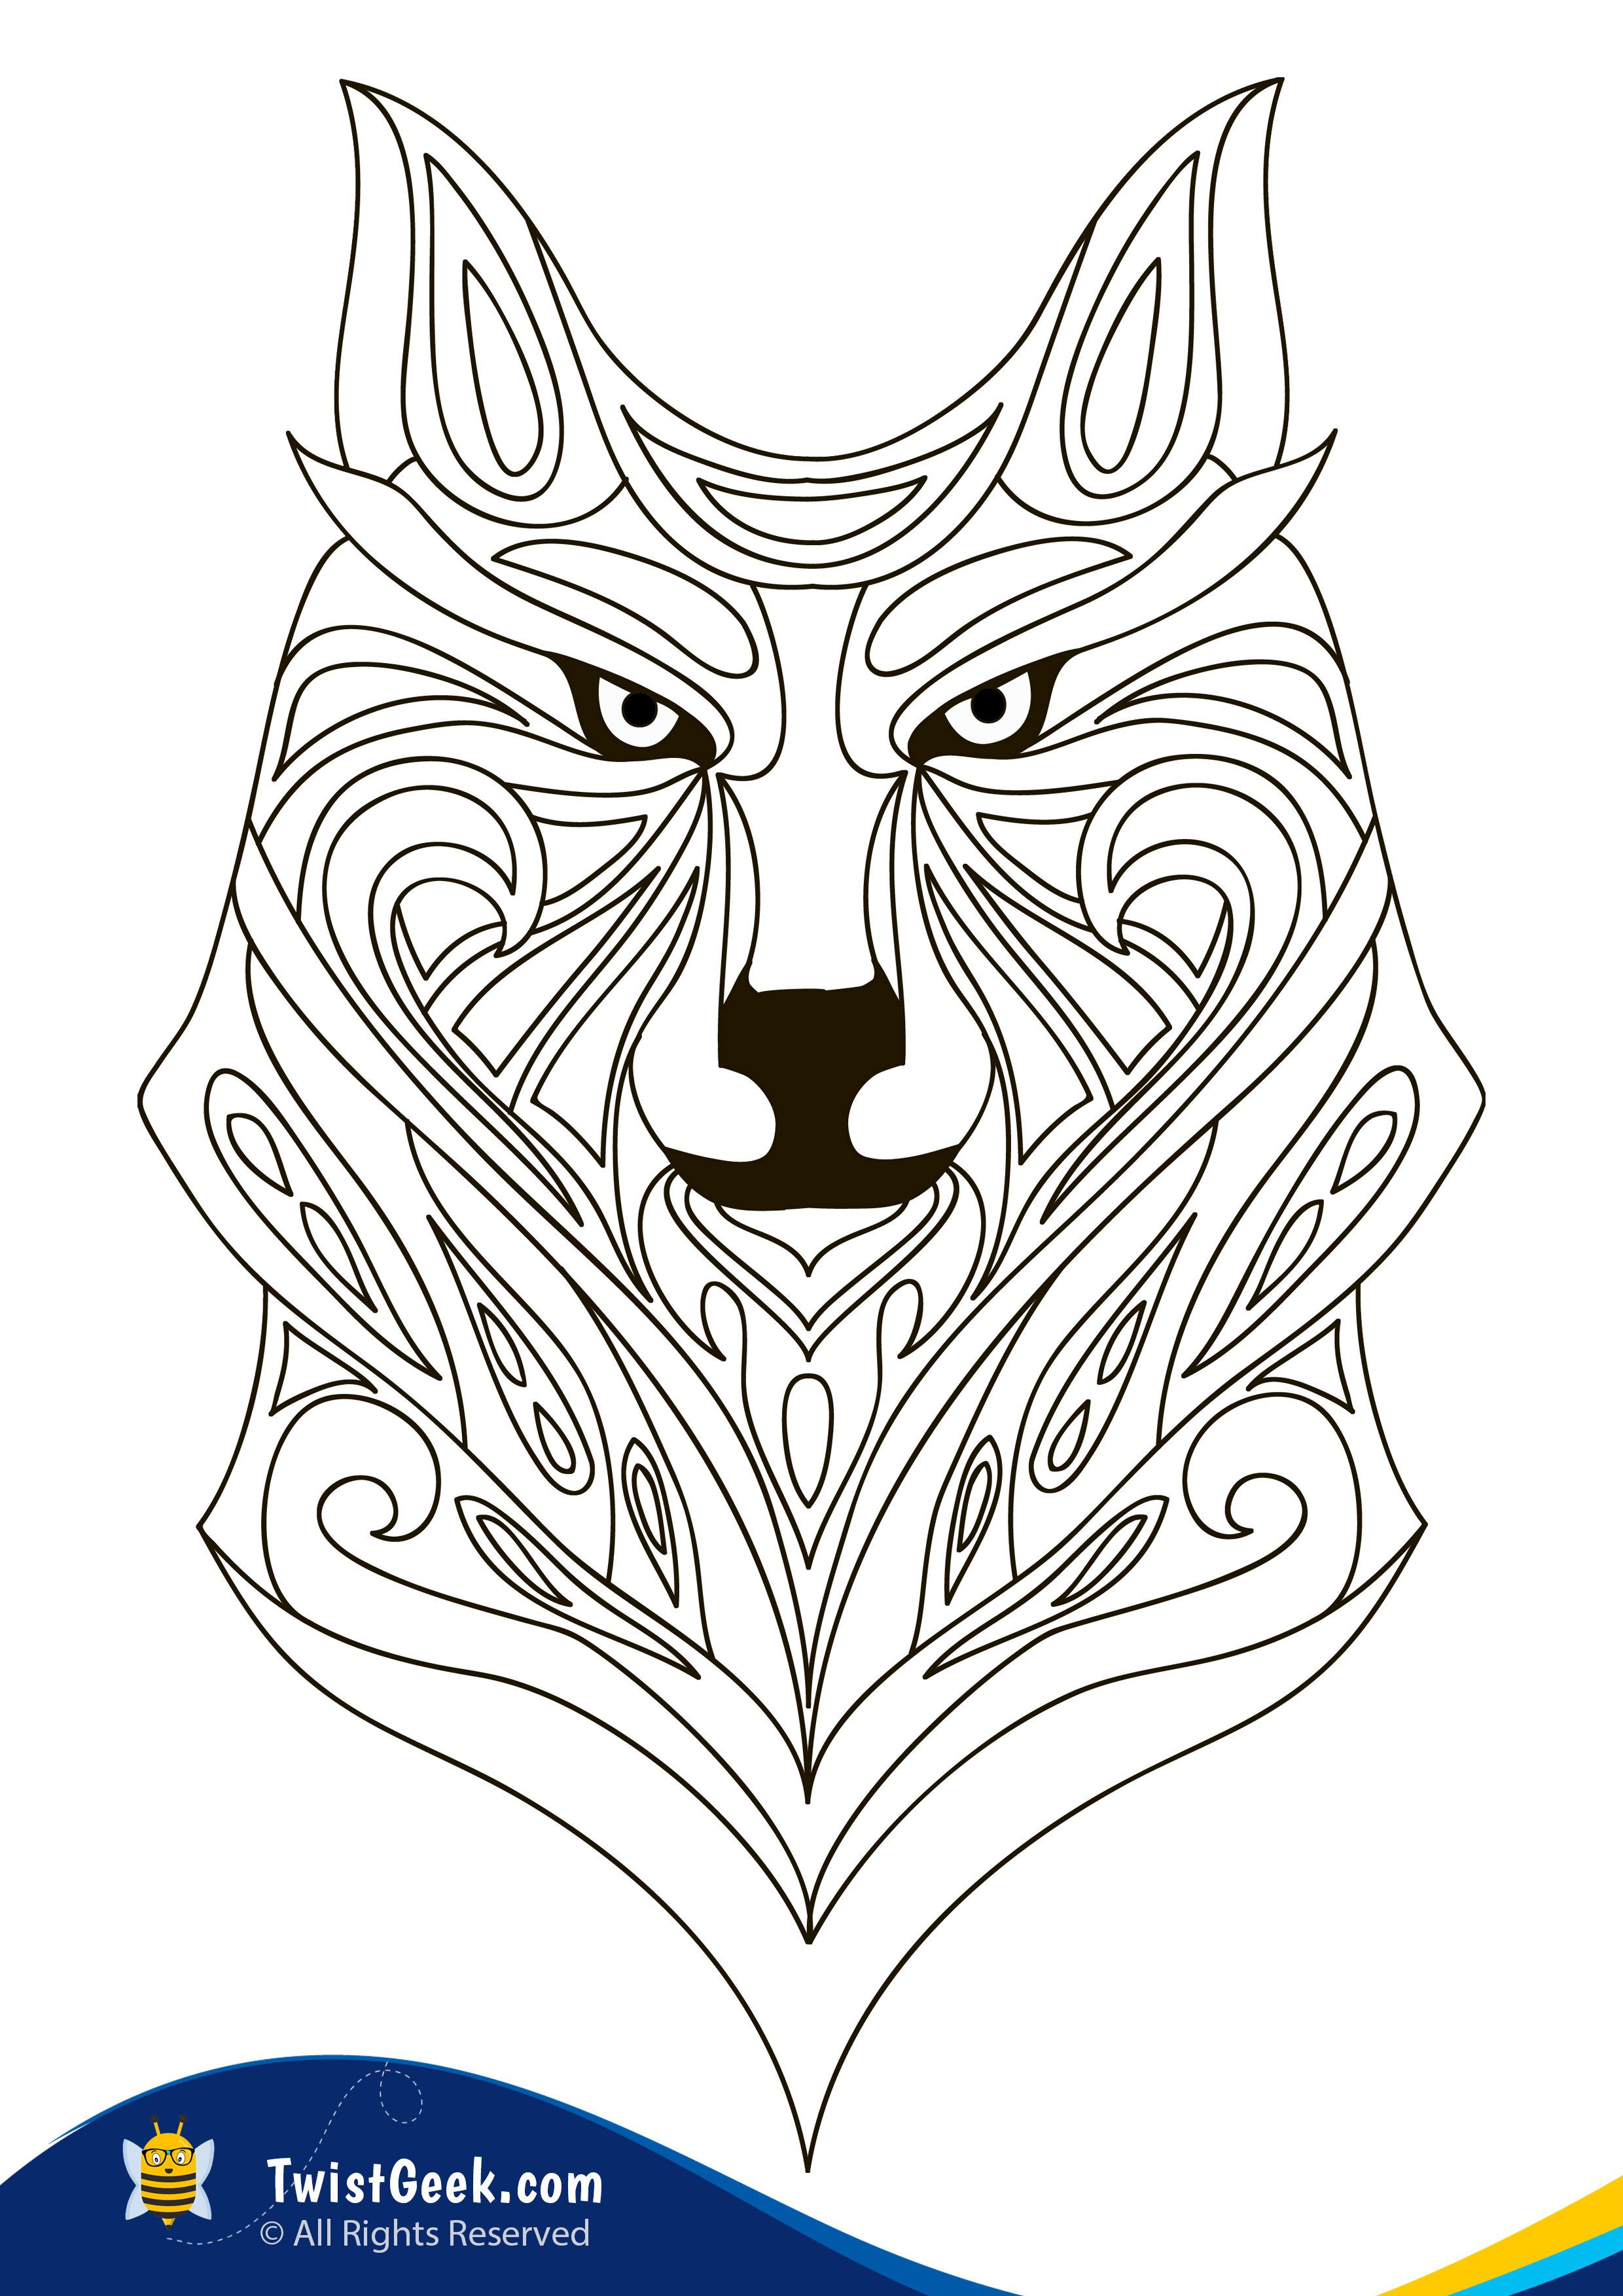 A4 Wolf Mandala Coloring Pages For Adults - TwistGeek in ...